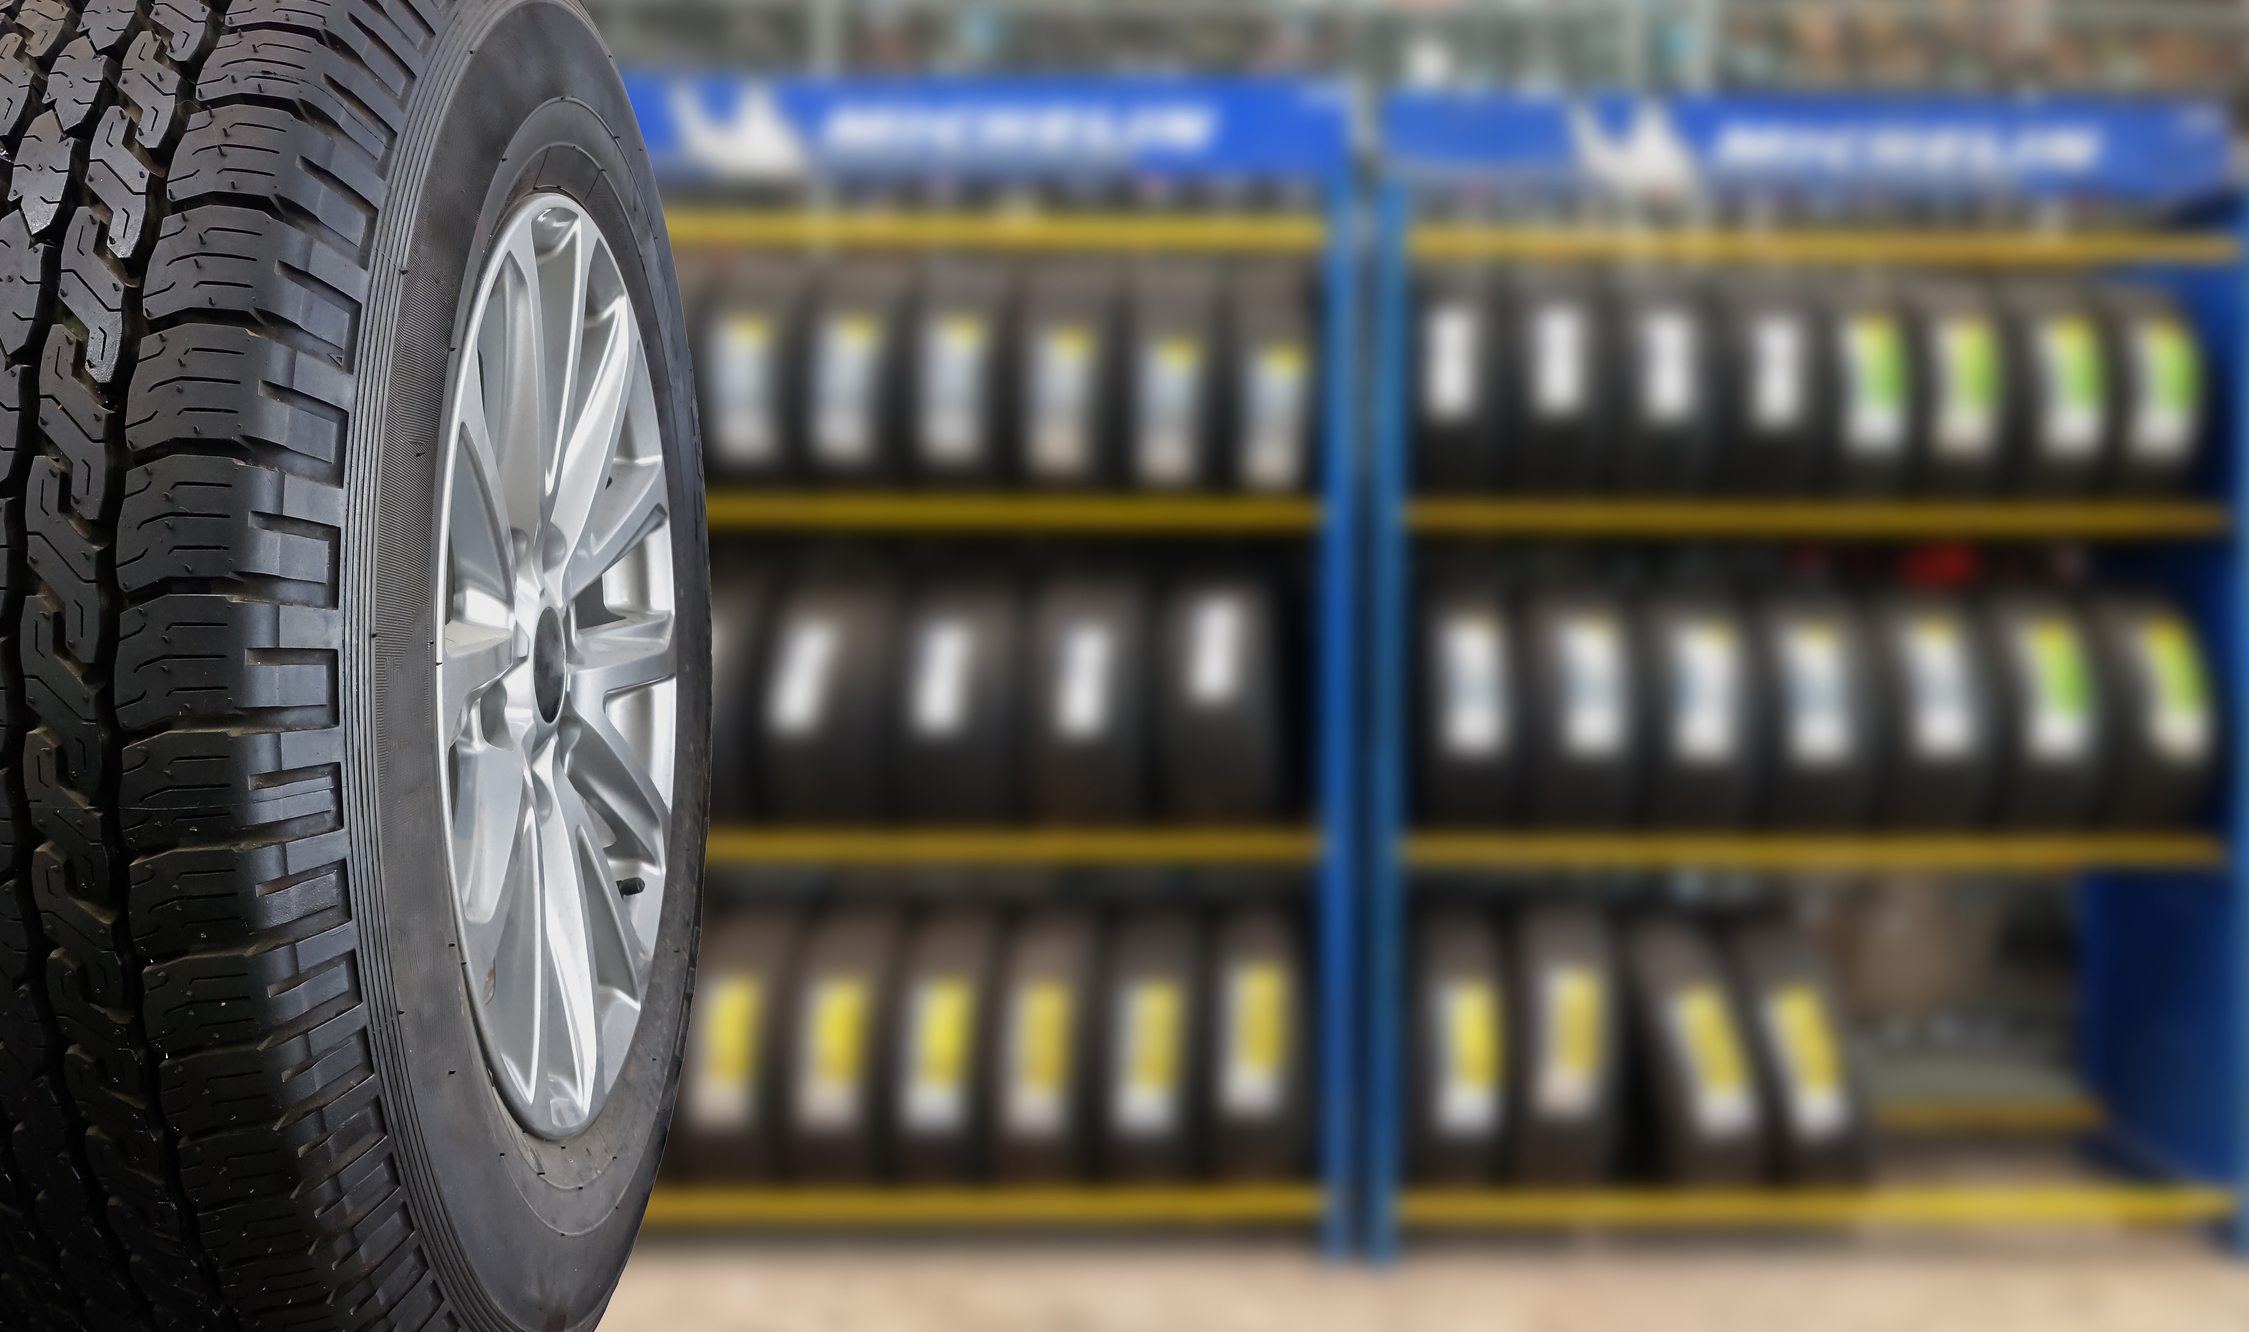 Cheap Tire Places >> Need New Tires These Are The 10 Best Places To Buy Them Clark Howard